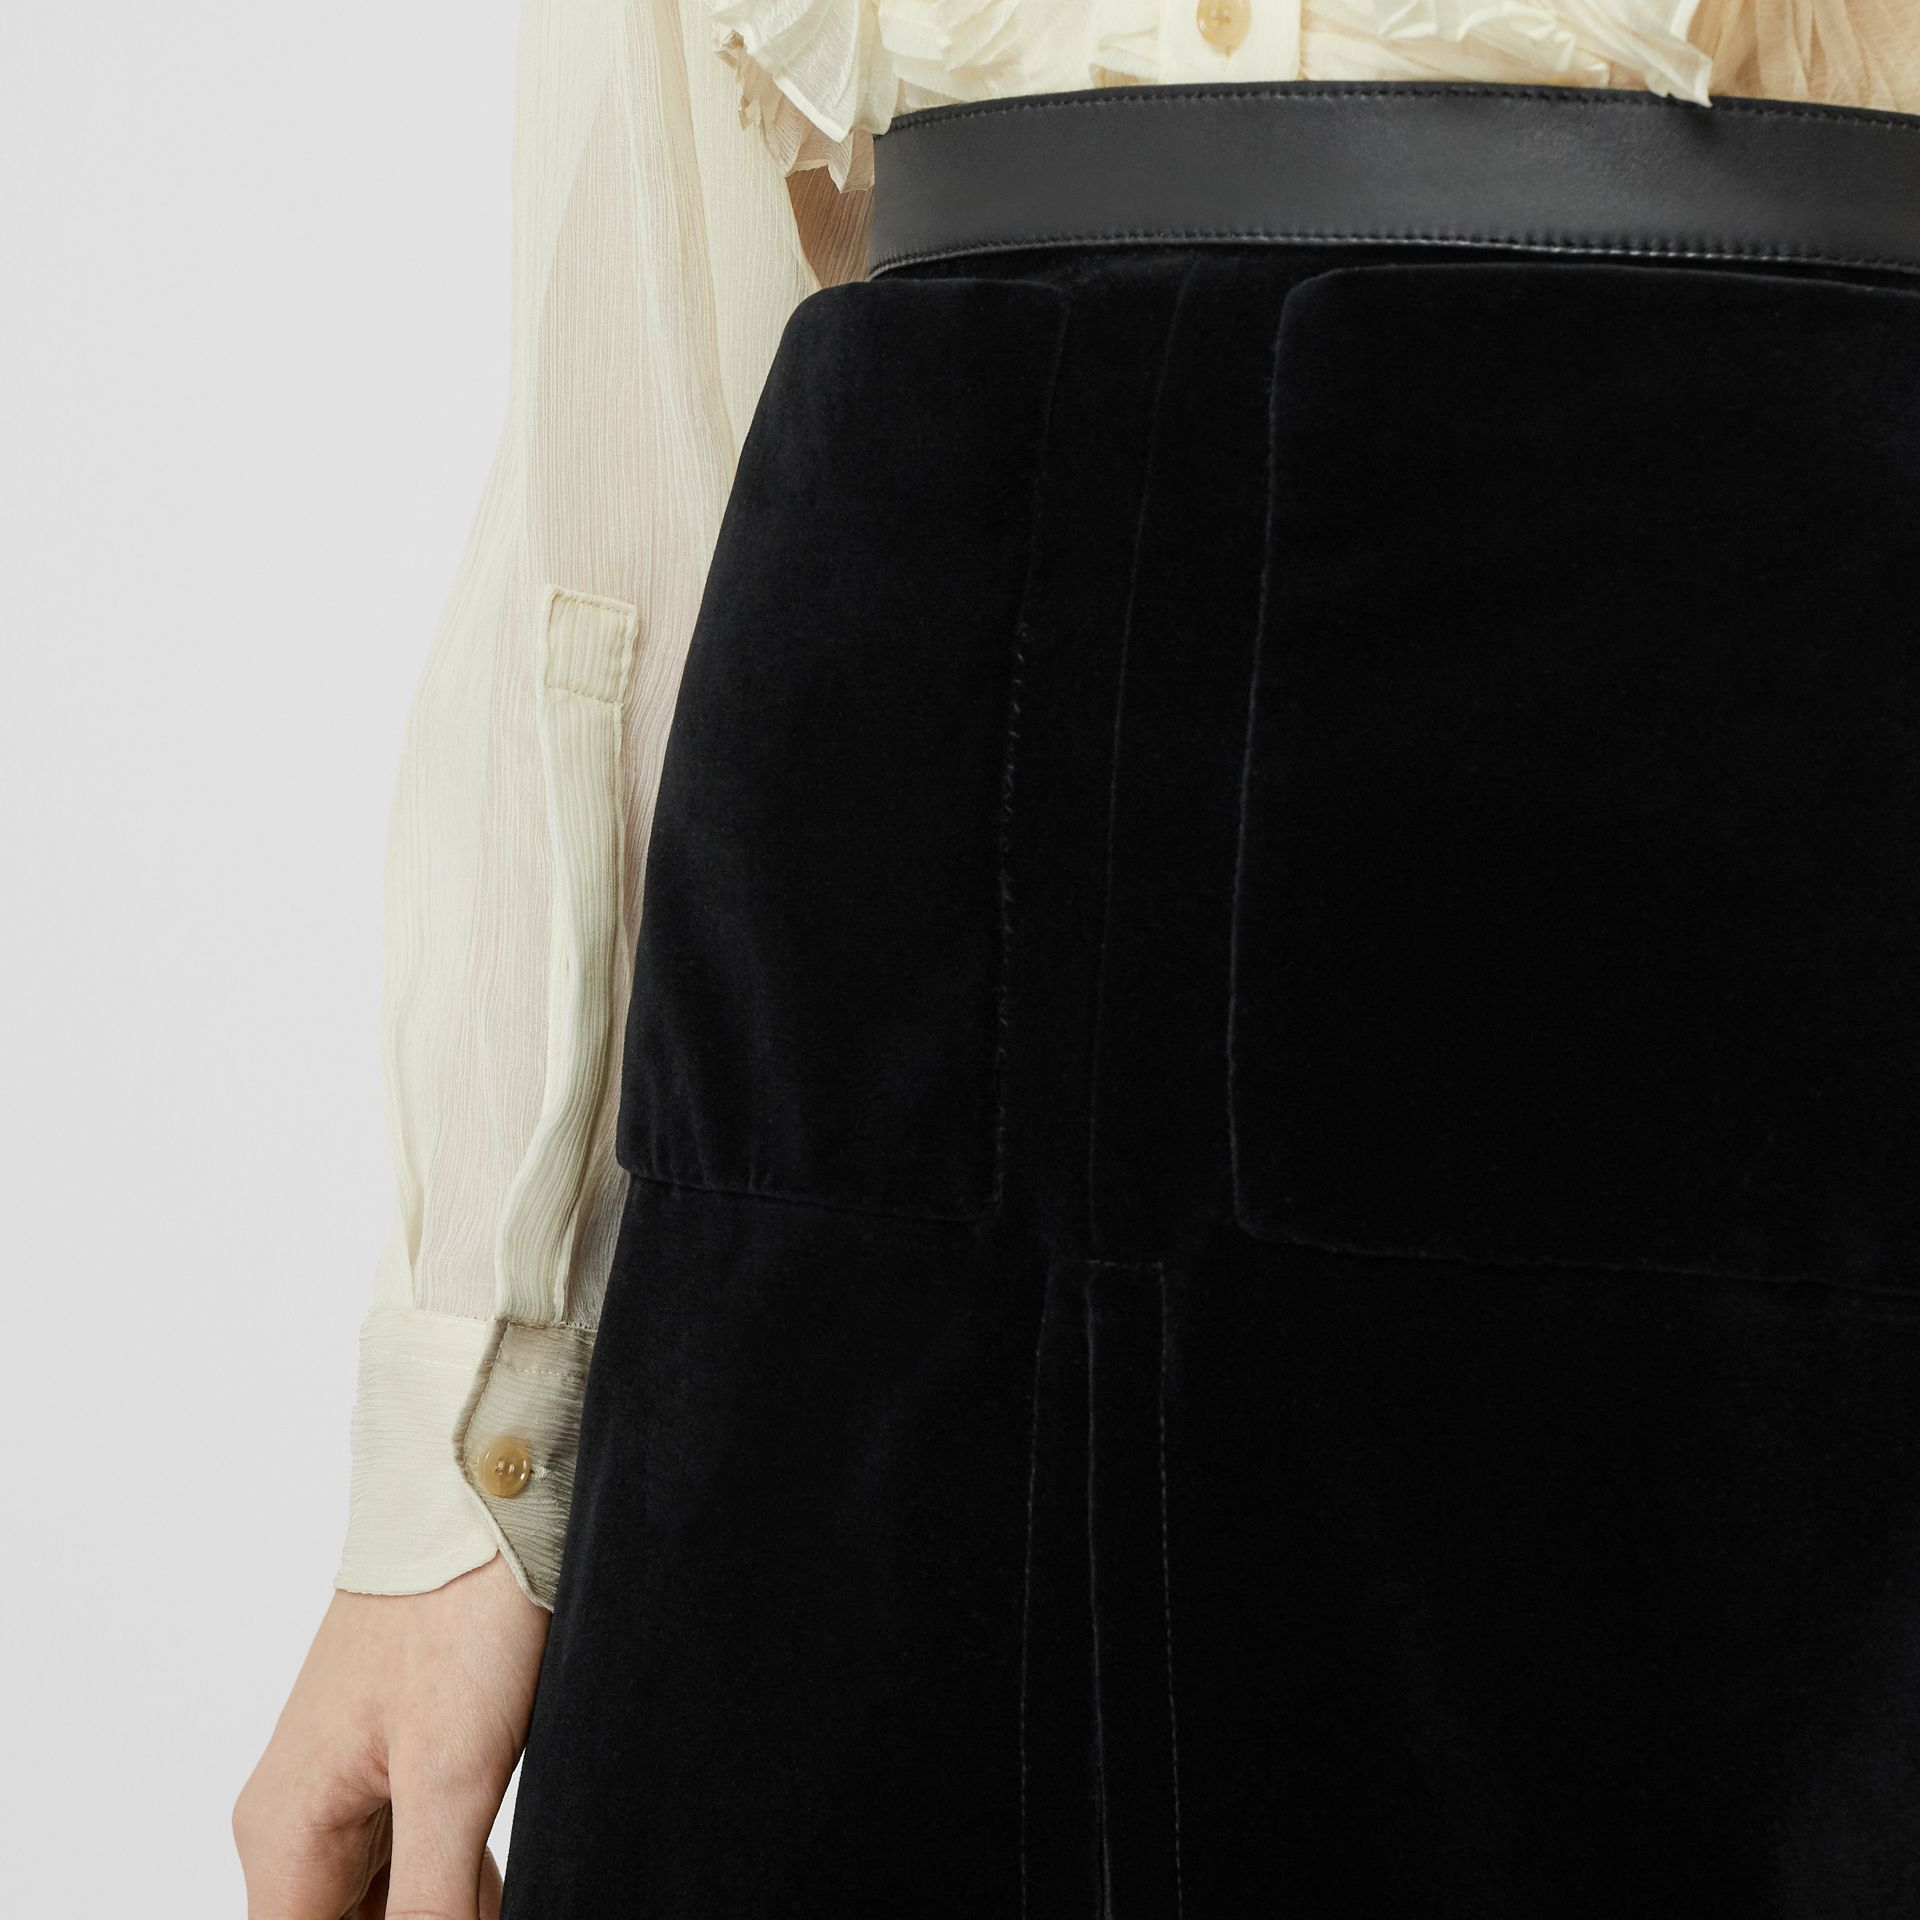 Lambskin Trim Box Pleat Detail Velvet and Wool Skirt in Black - Women | Burberry - gallery image 5